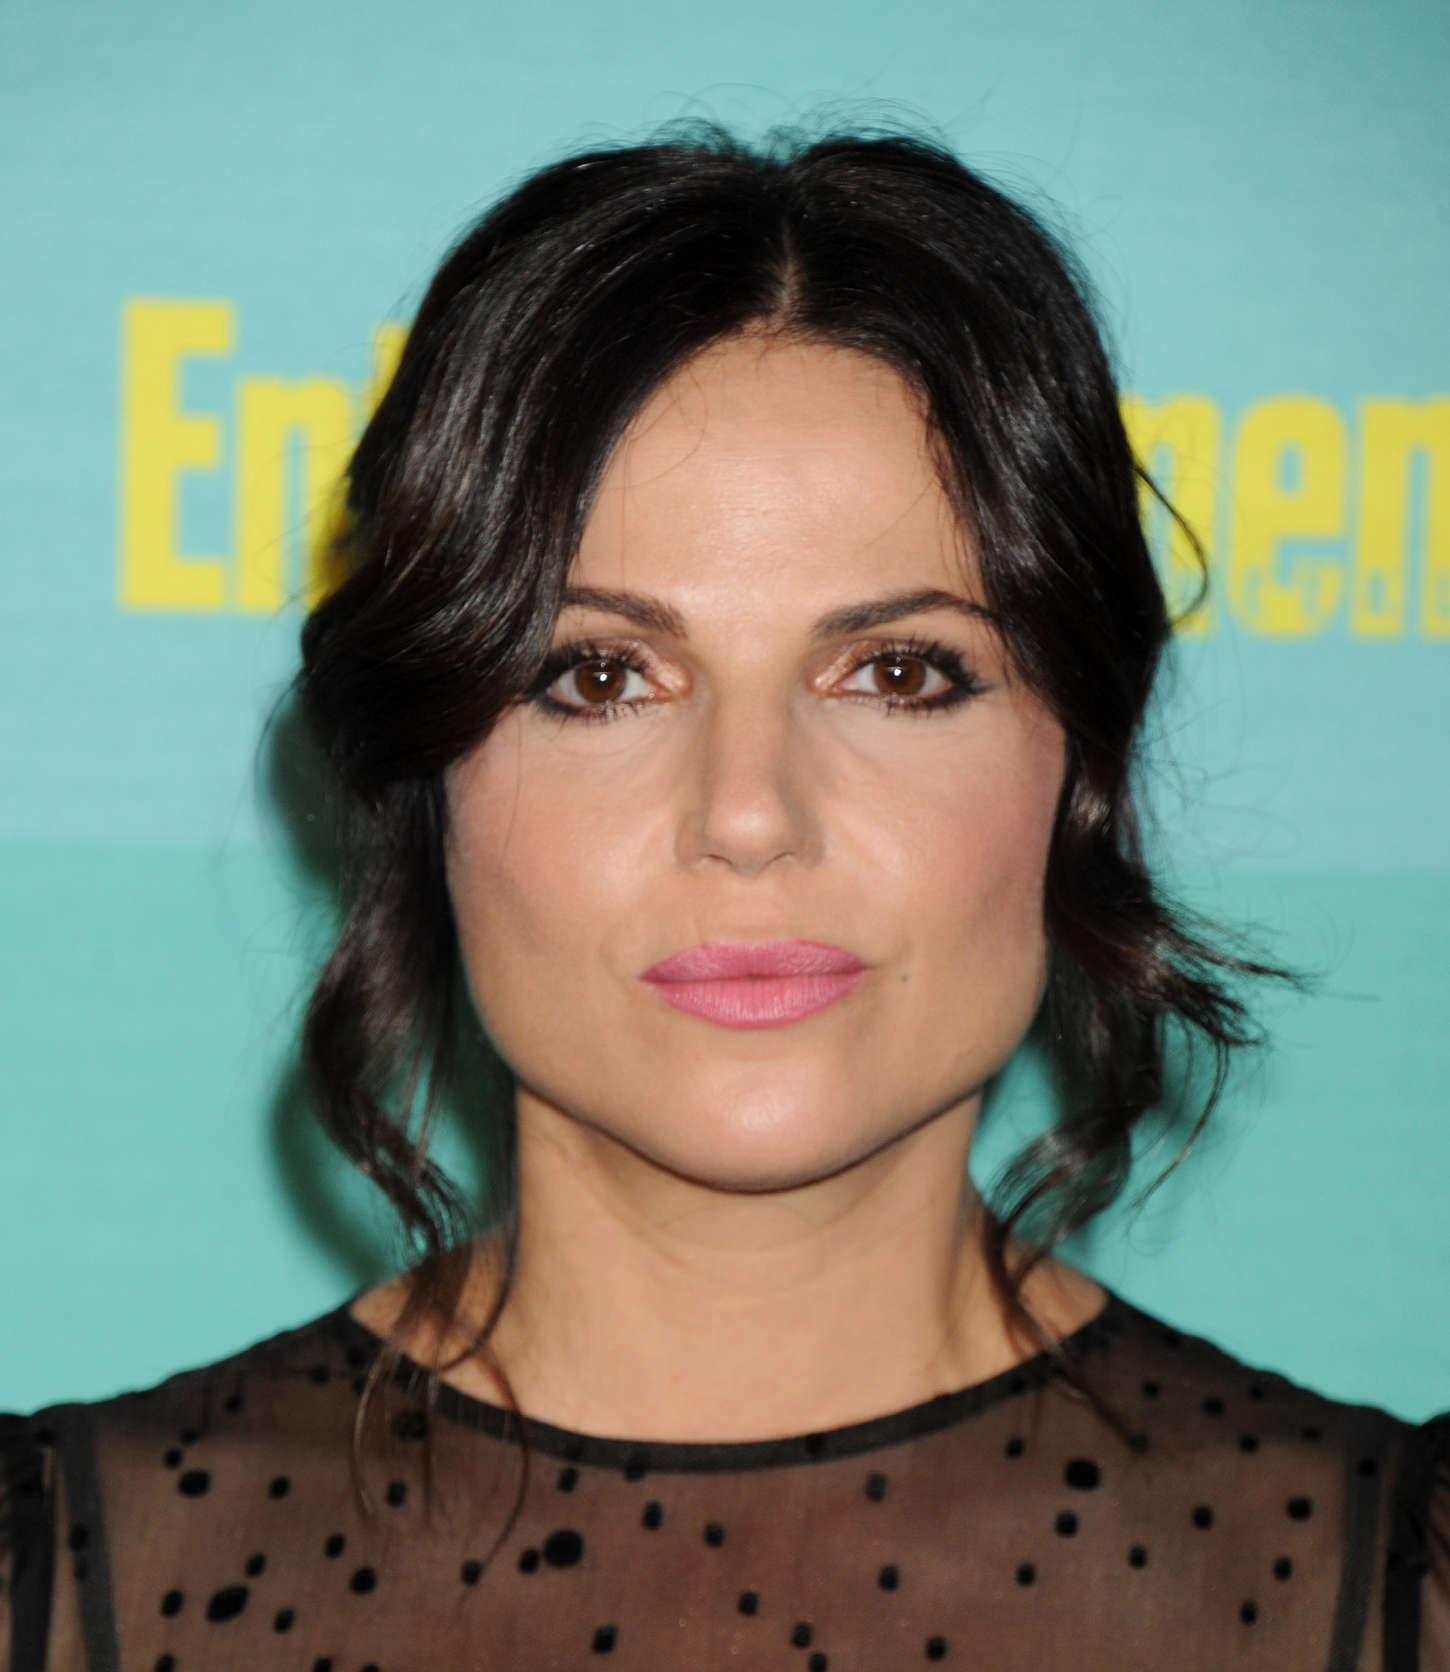 Lana Parrilla Entertainment Weekly Party at Comic-Con in San Diego